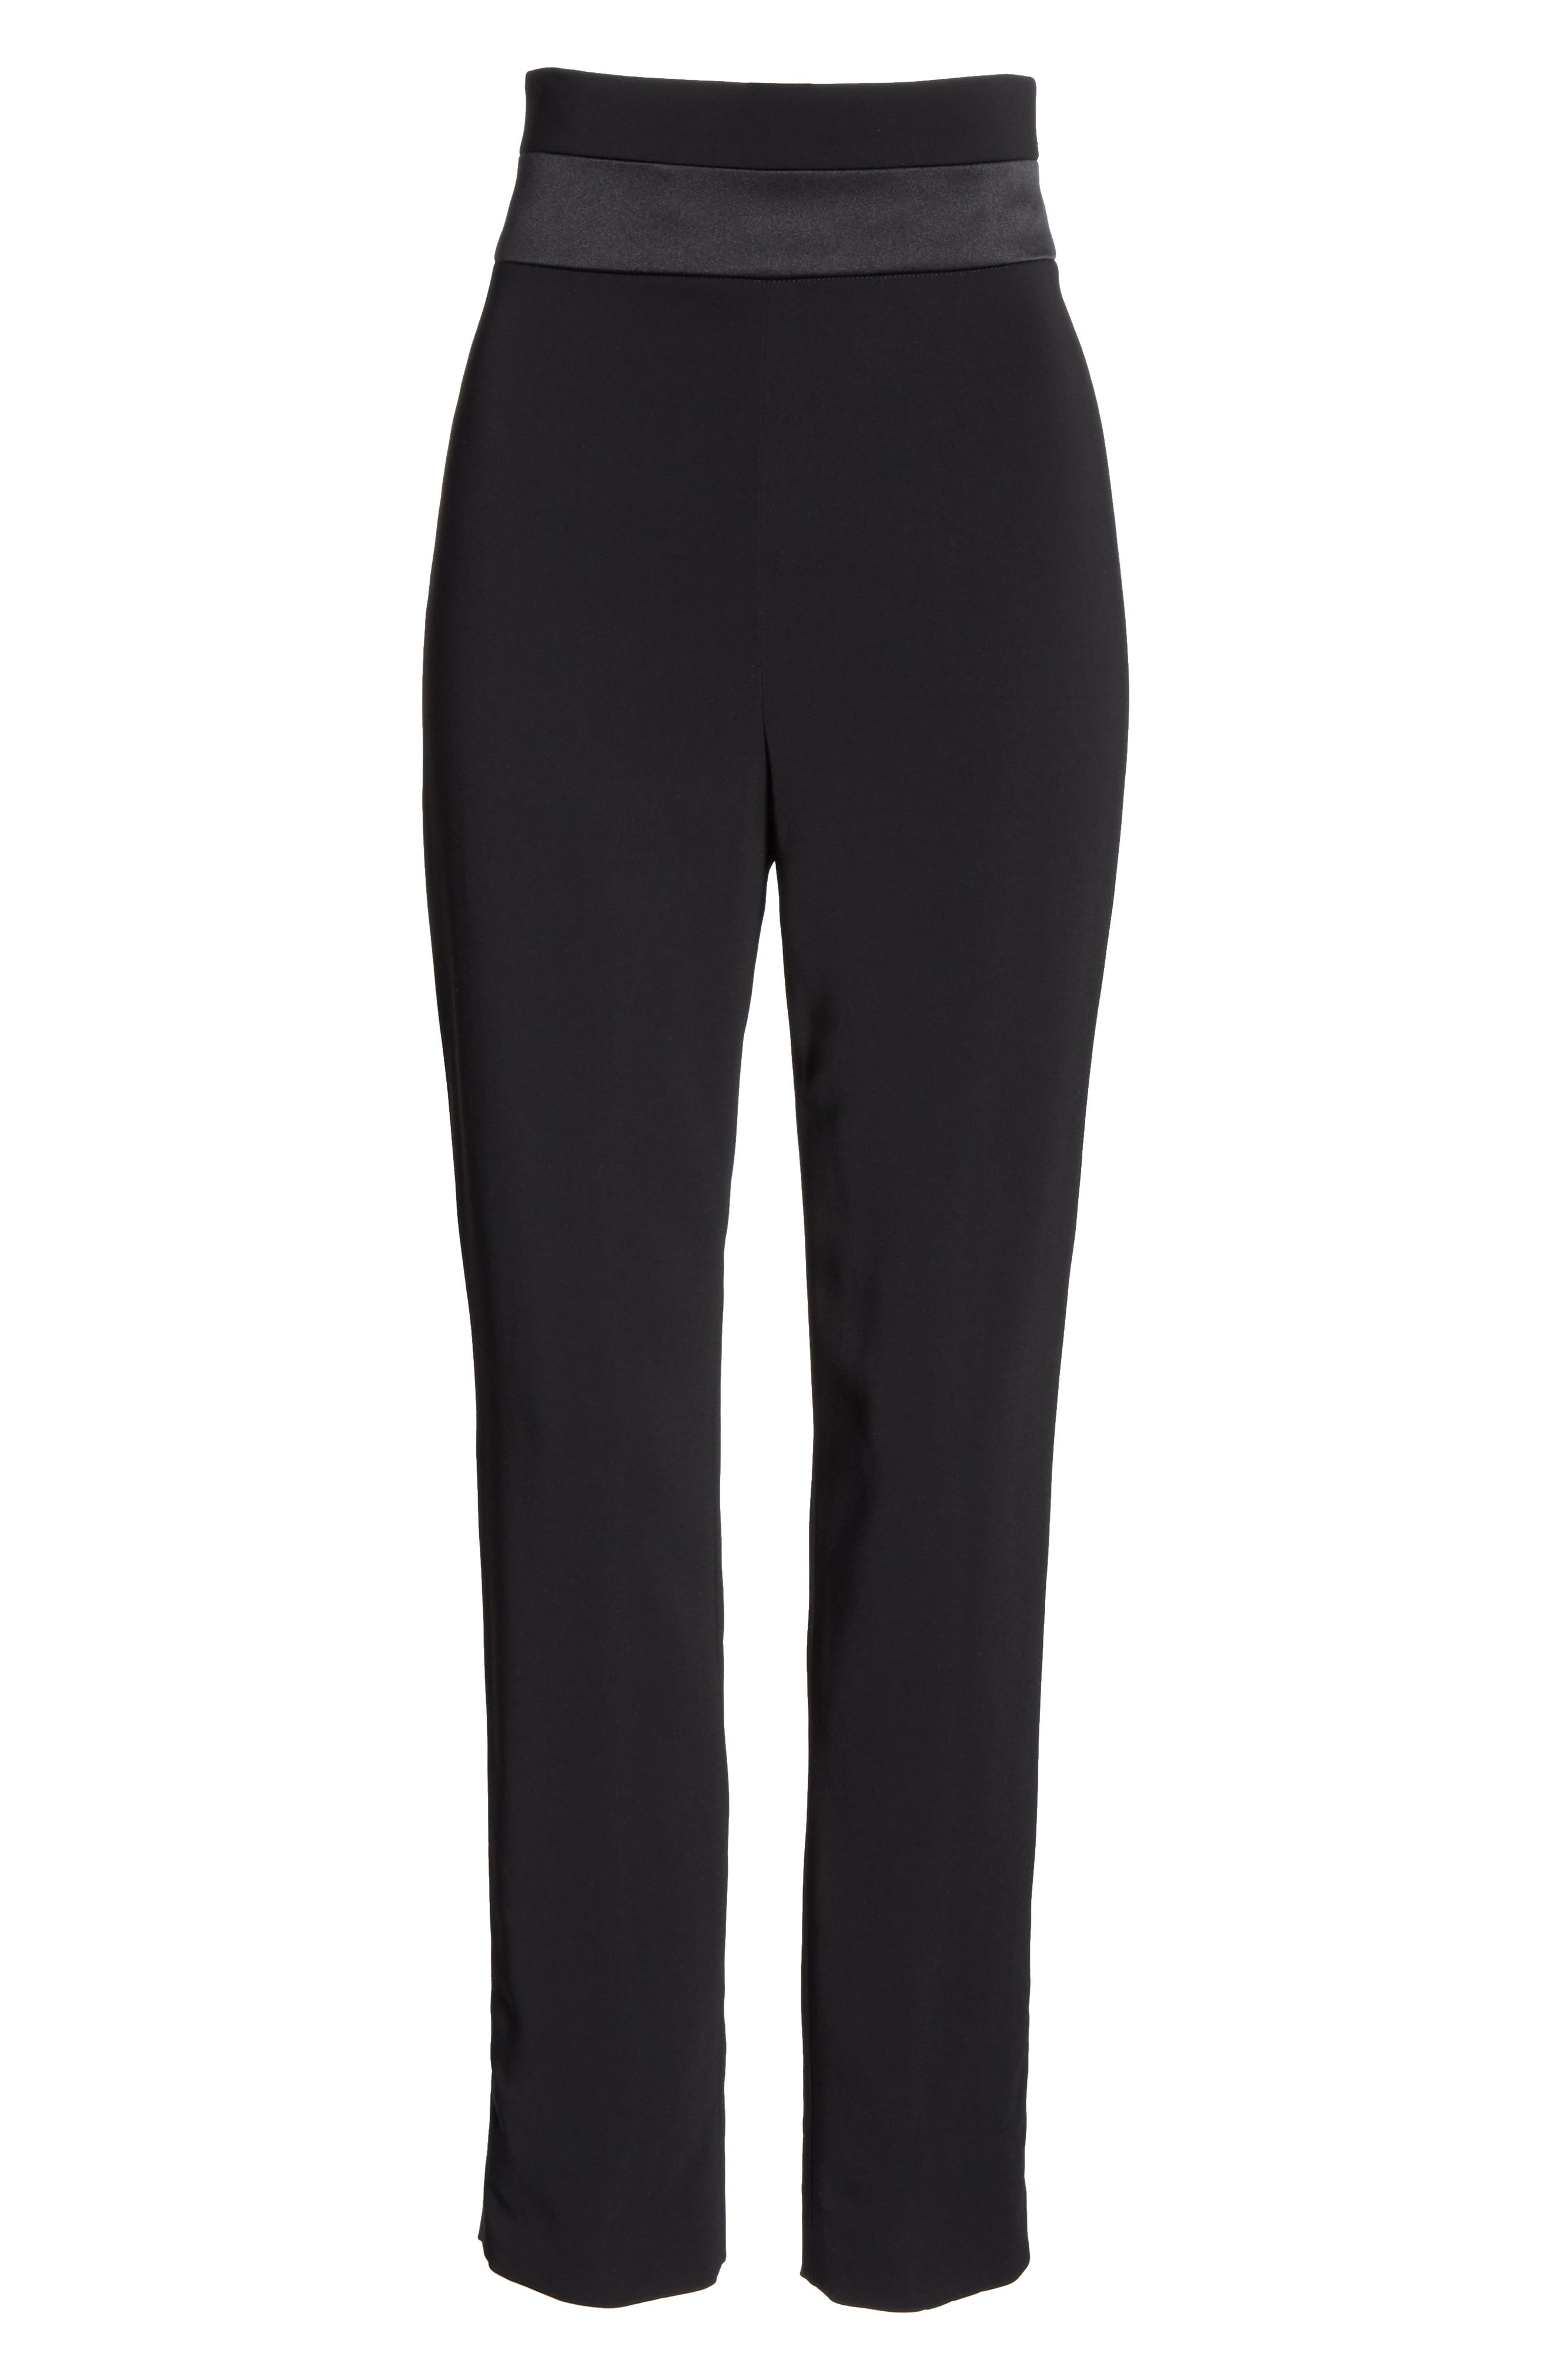 CUSHNIE,                             High Waist Crop Slim Pants,                             Alternate thumbnail 6, color,                             BLACK